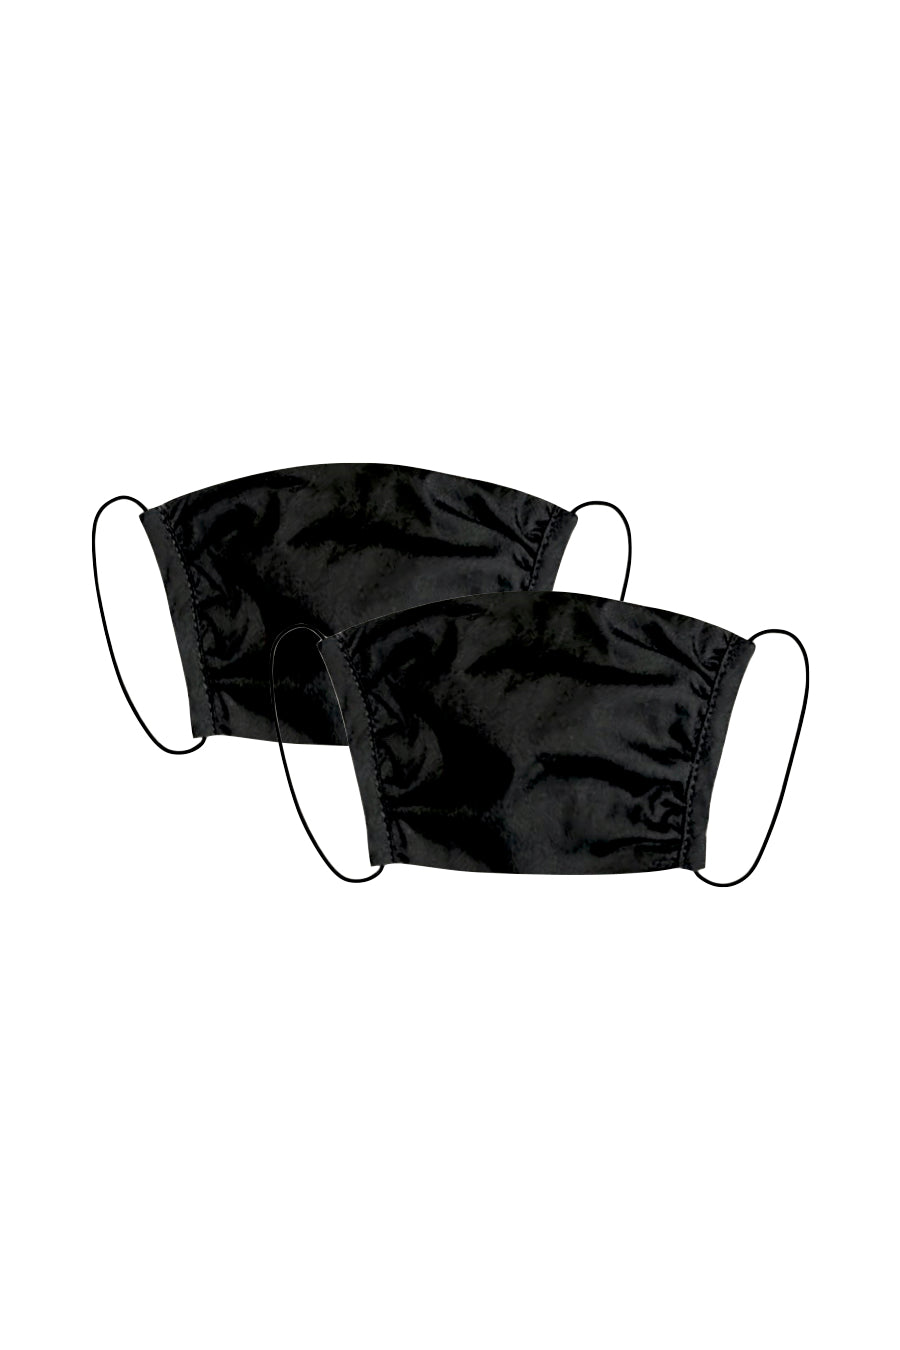 KES Peace Face Covering - Black Cotton (2 in 1 Pack)